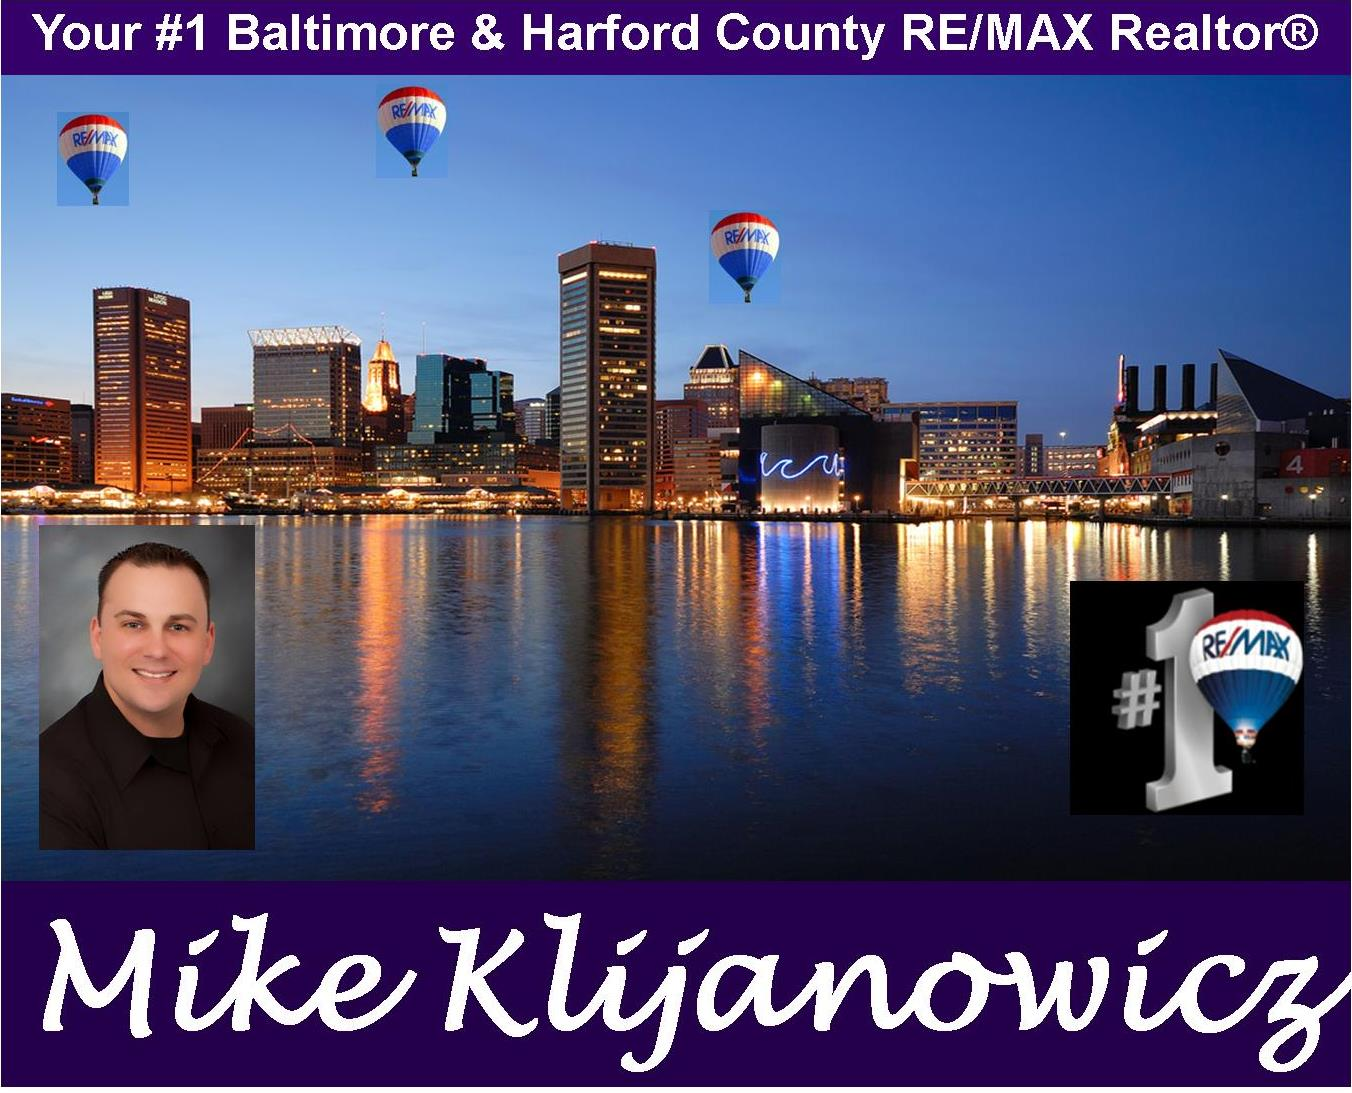 Your # 1 Harford County and Baltimore Maryland RE/MAX Real Estate Agent Mike Klijanowicz, Set up your FREE Consultation with Mike to discuss your personal home buying and/or selling plans, Search through the MLS Home Property Listings and Real Estate for sale and see ALL the home property listings and real estate for sale in Maryland, Request your FREE Home Value Report for your current home